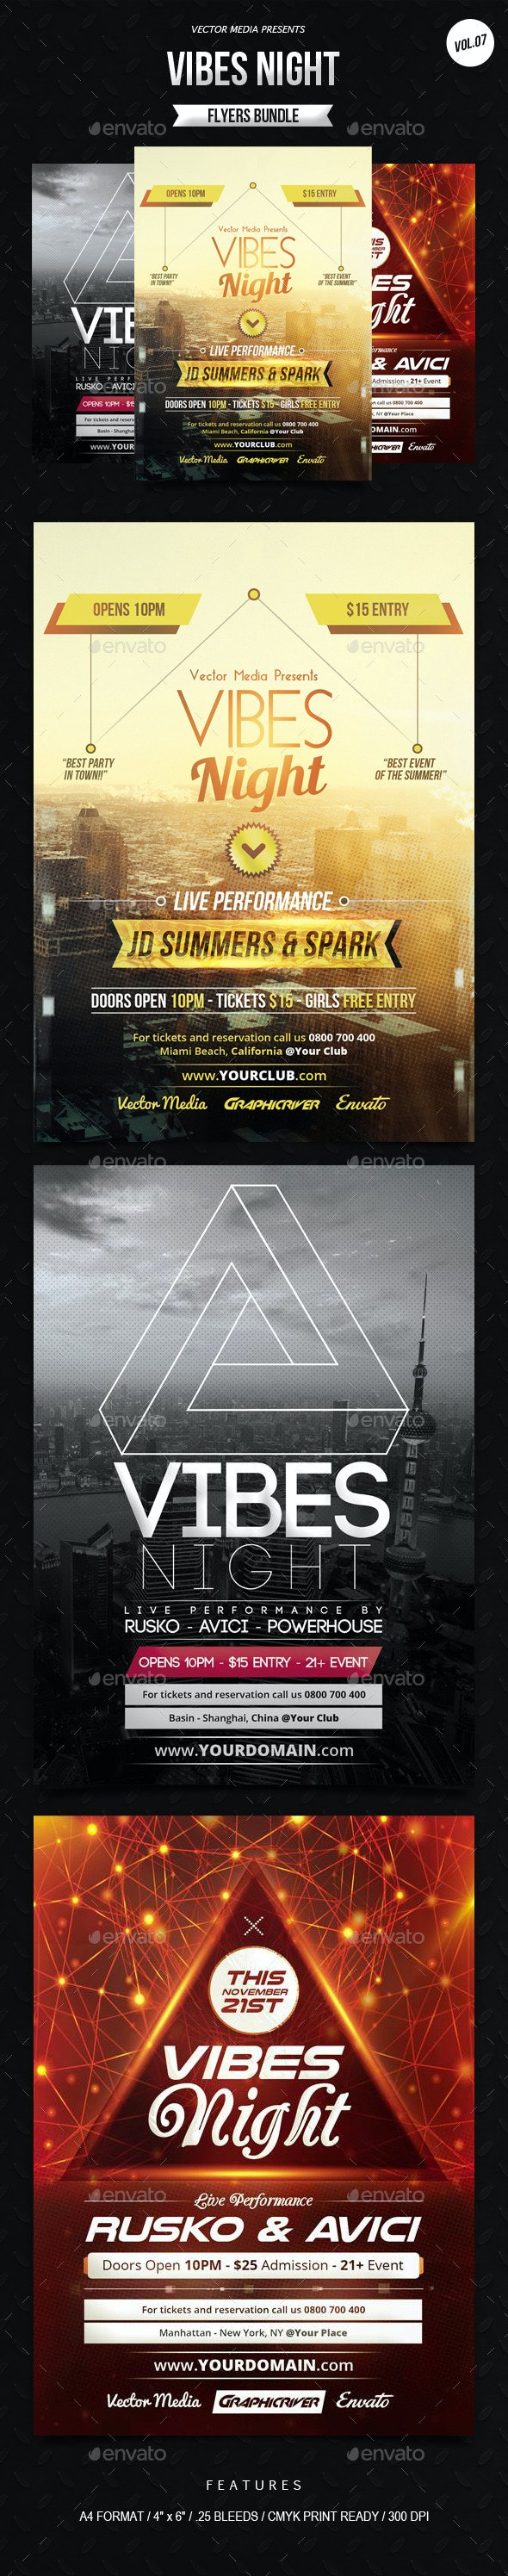 Vibes Night - Flyers Bundle [Vol.7] - Clubs & Parties Events